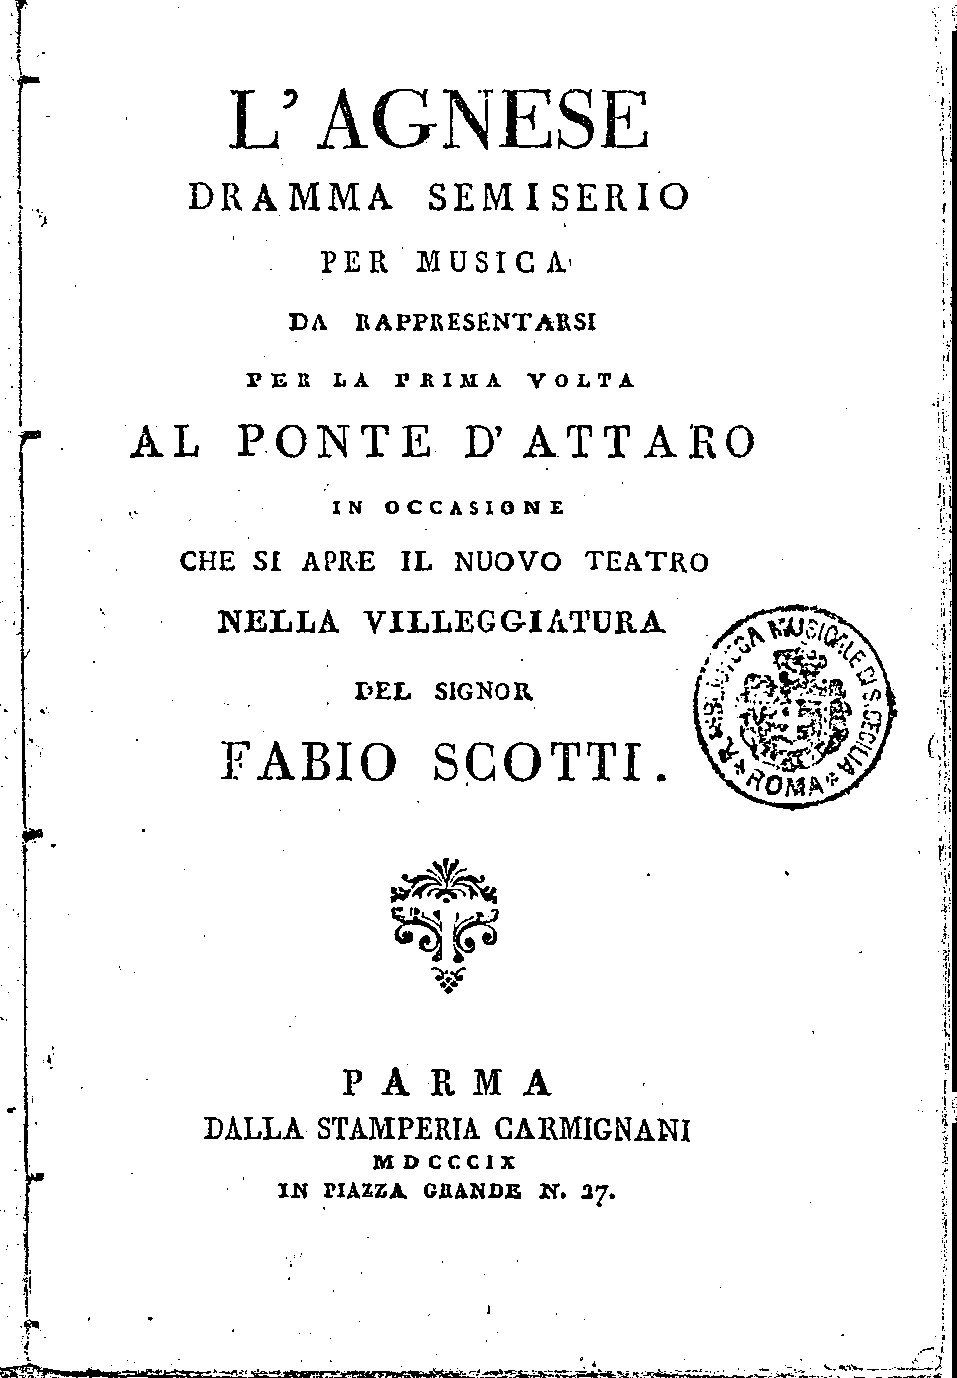 The original libretto of 1809